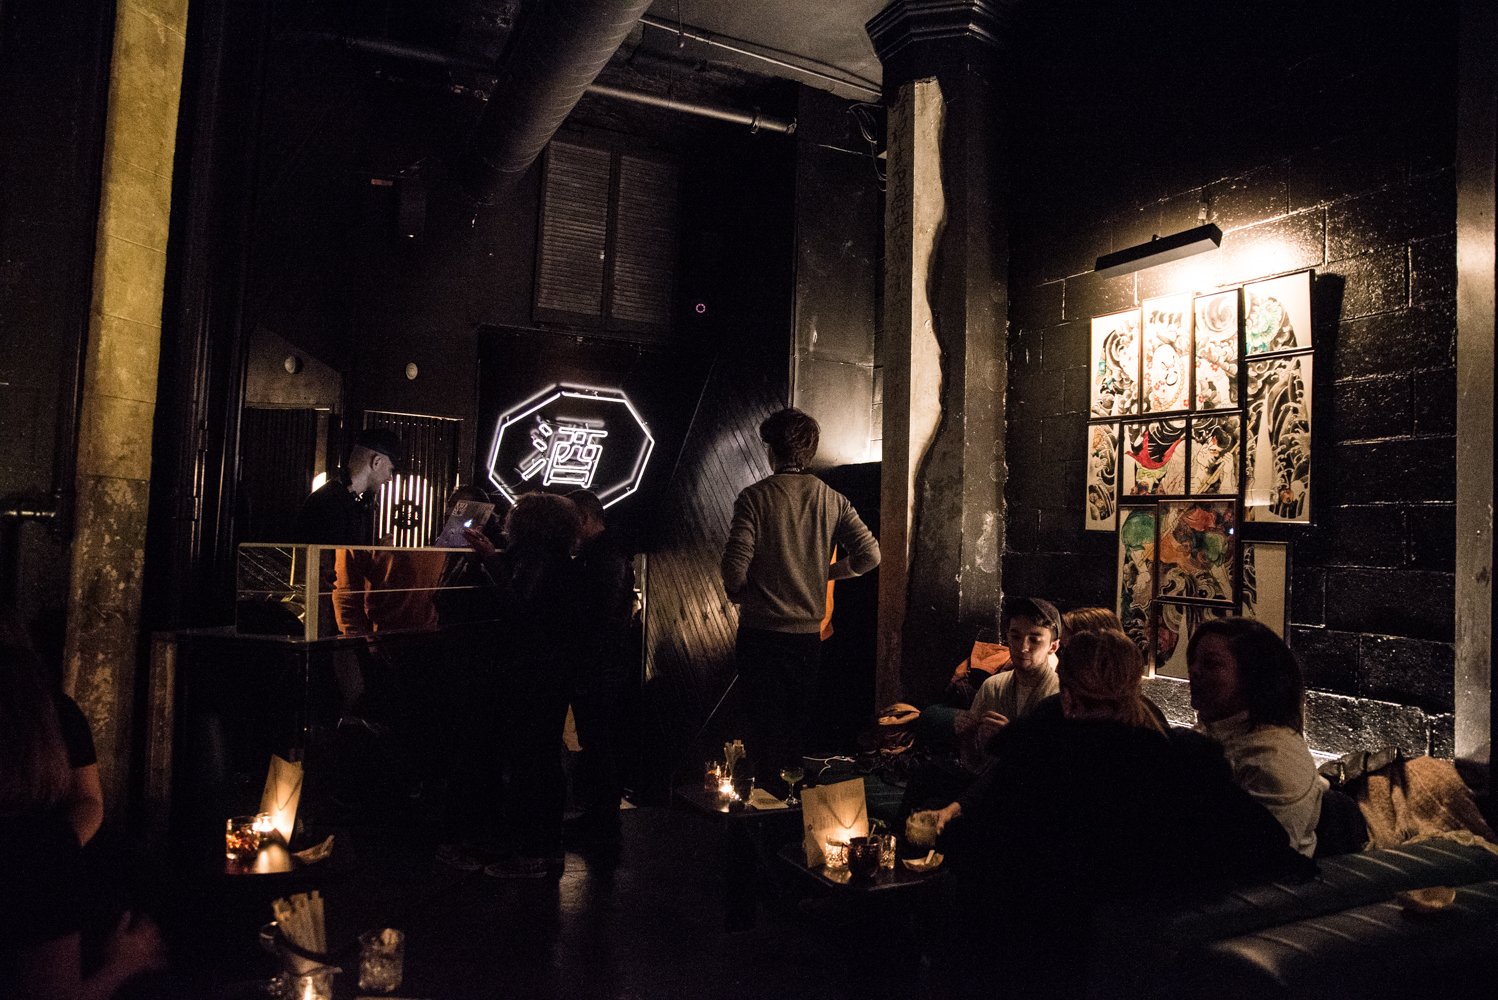 Découverte du Gokudo: le bar secret en vogue à Montréal (PHOTOS)